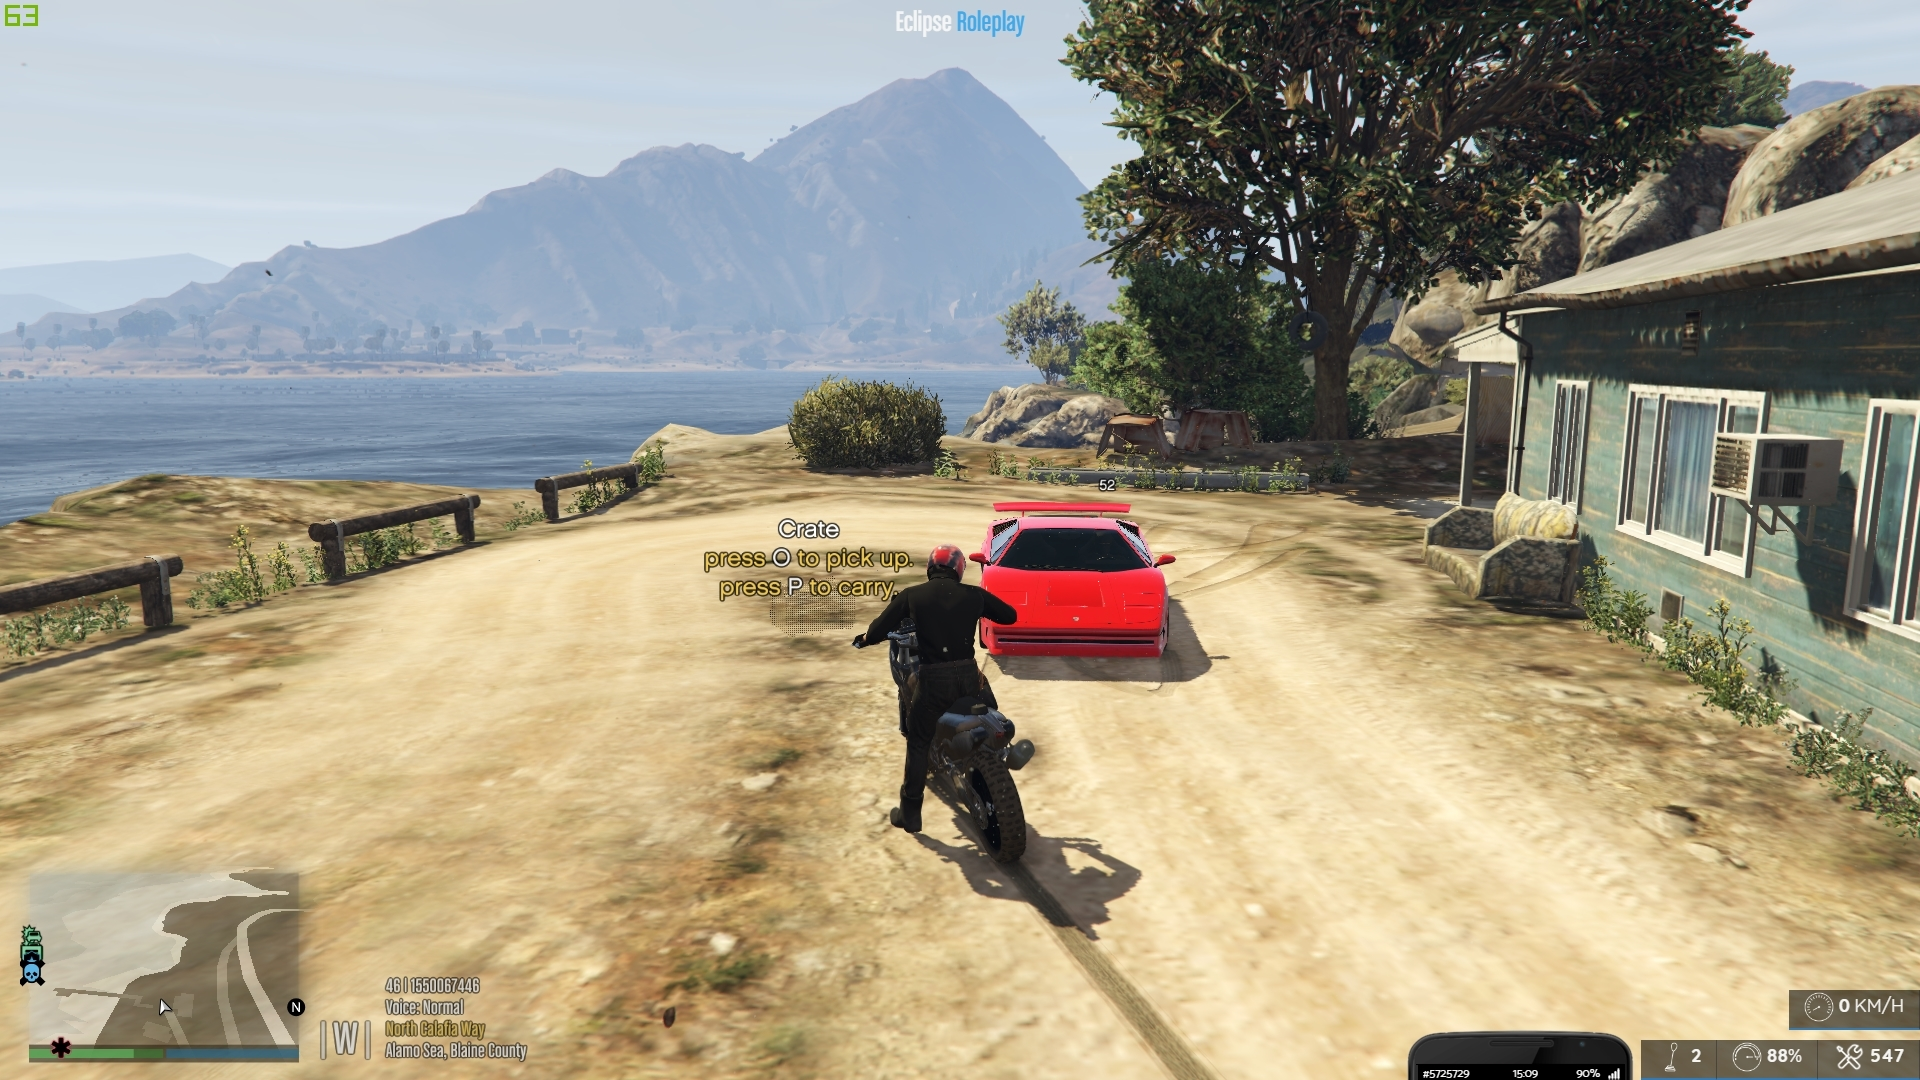 Eclipse-RP - GTA V Roleplaying Server